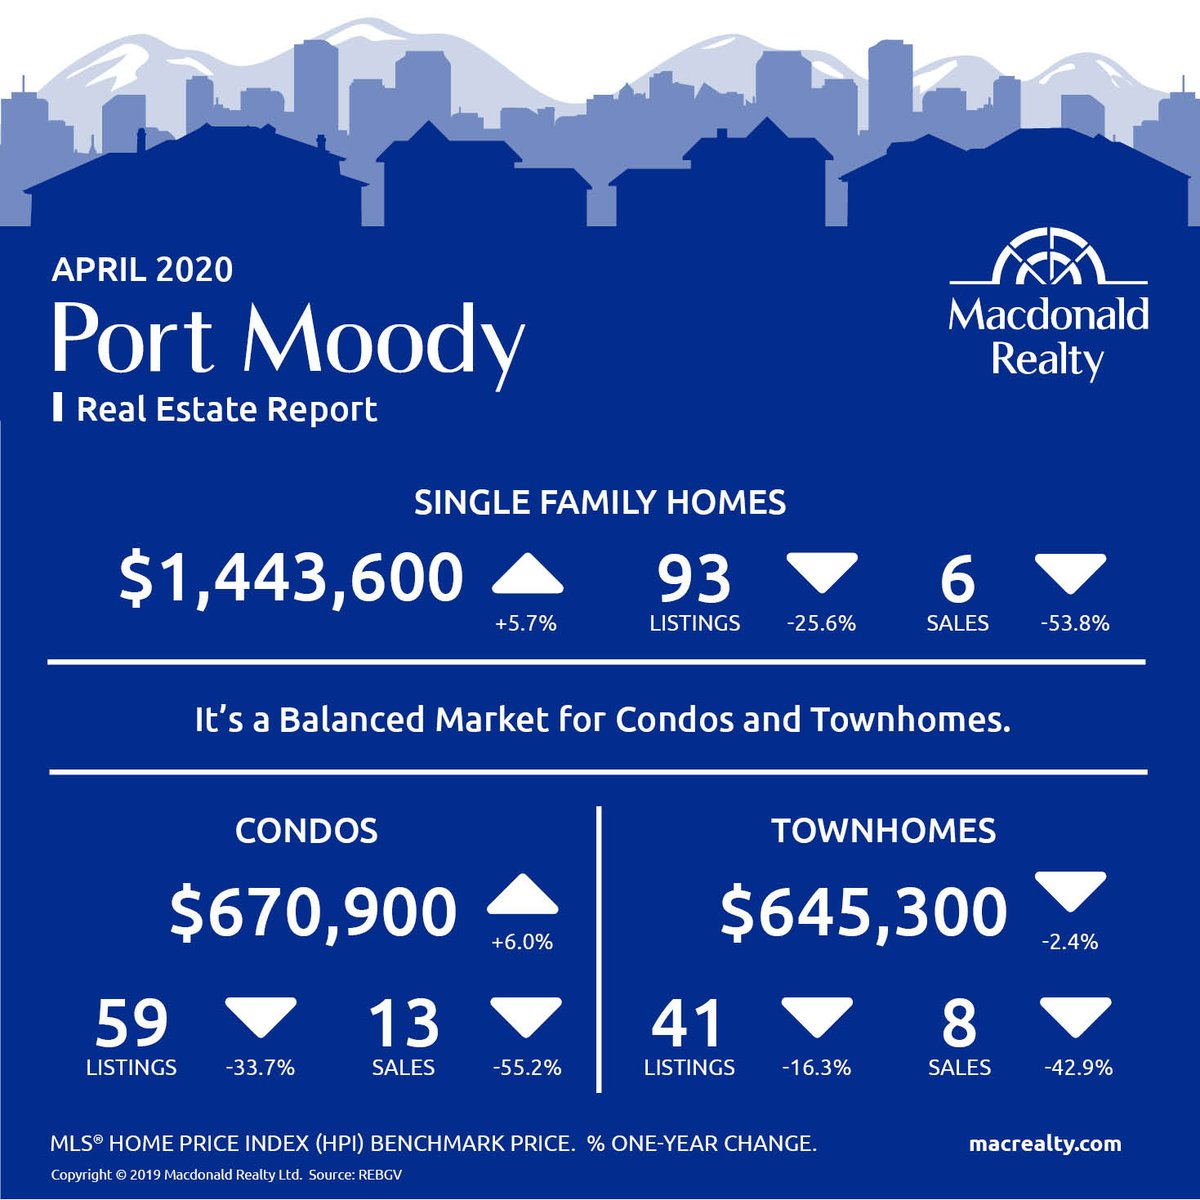 Thinking of buying or selling your #home? Here are the #April stats   #realestate #portmoody #portmoodybc #house #townhome #condo #homebuyer #homeseller #investor #vanre #yvrre #realtor @donCmontgomery